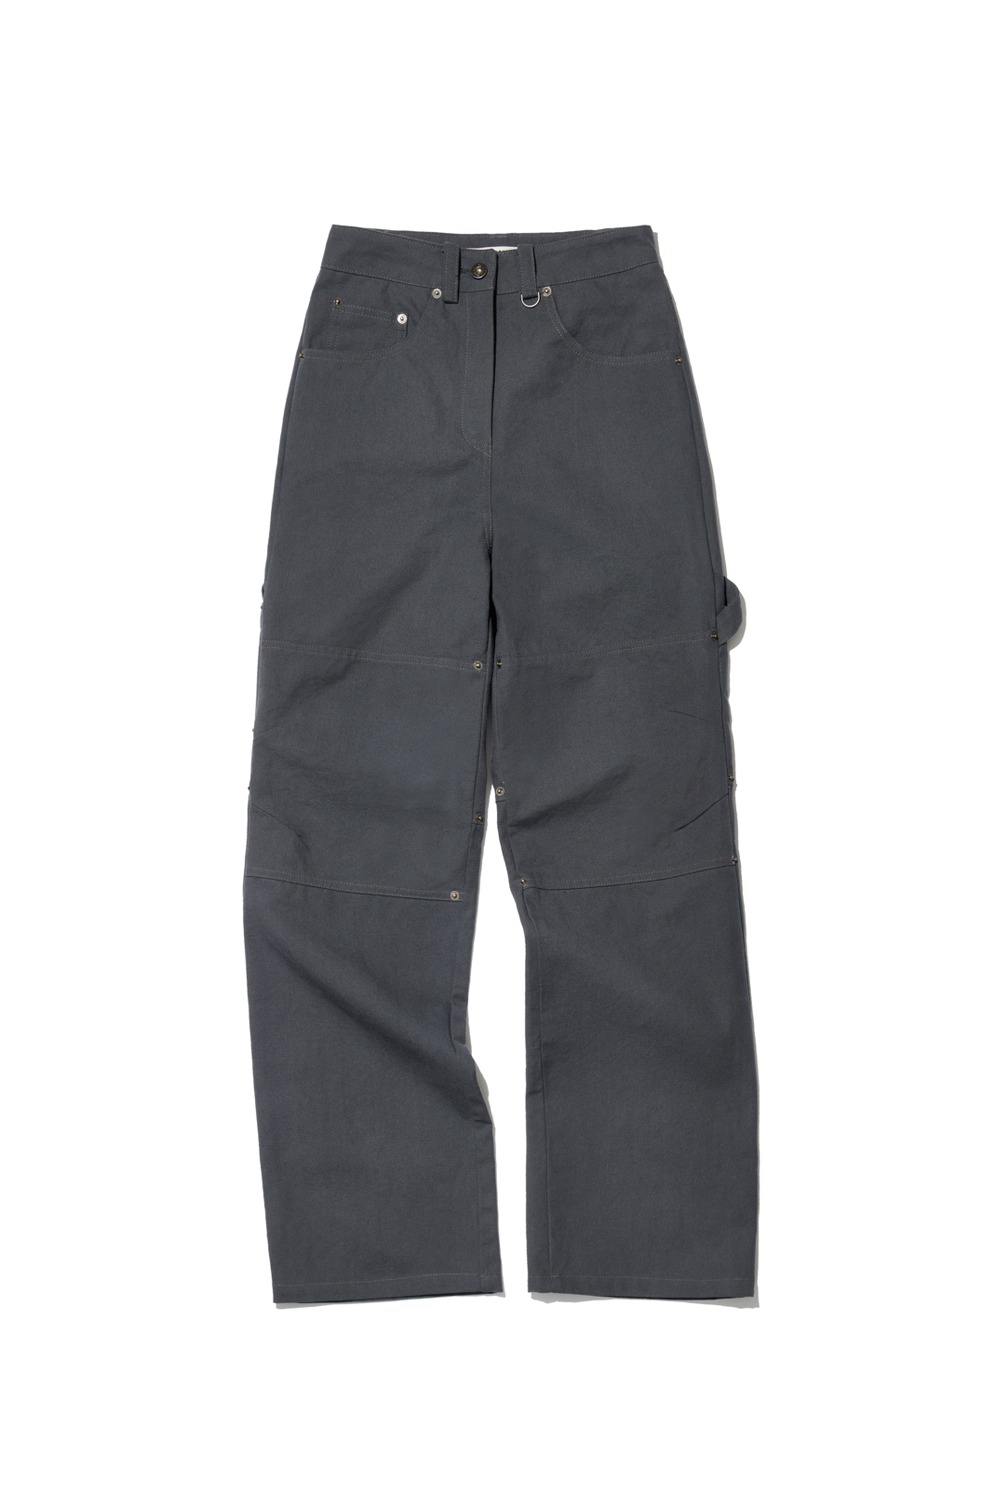 PROJECT MAGO_OXFORD CARPENTER PANTS_GREY